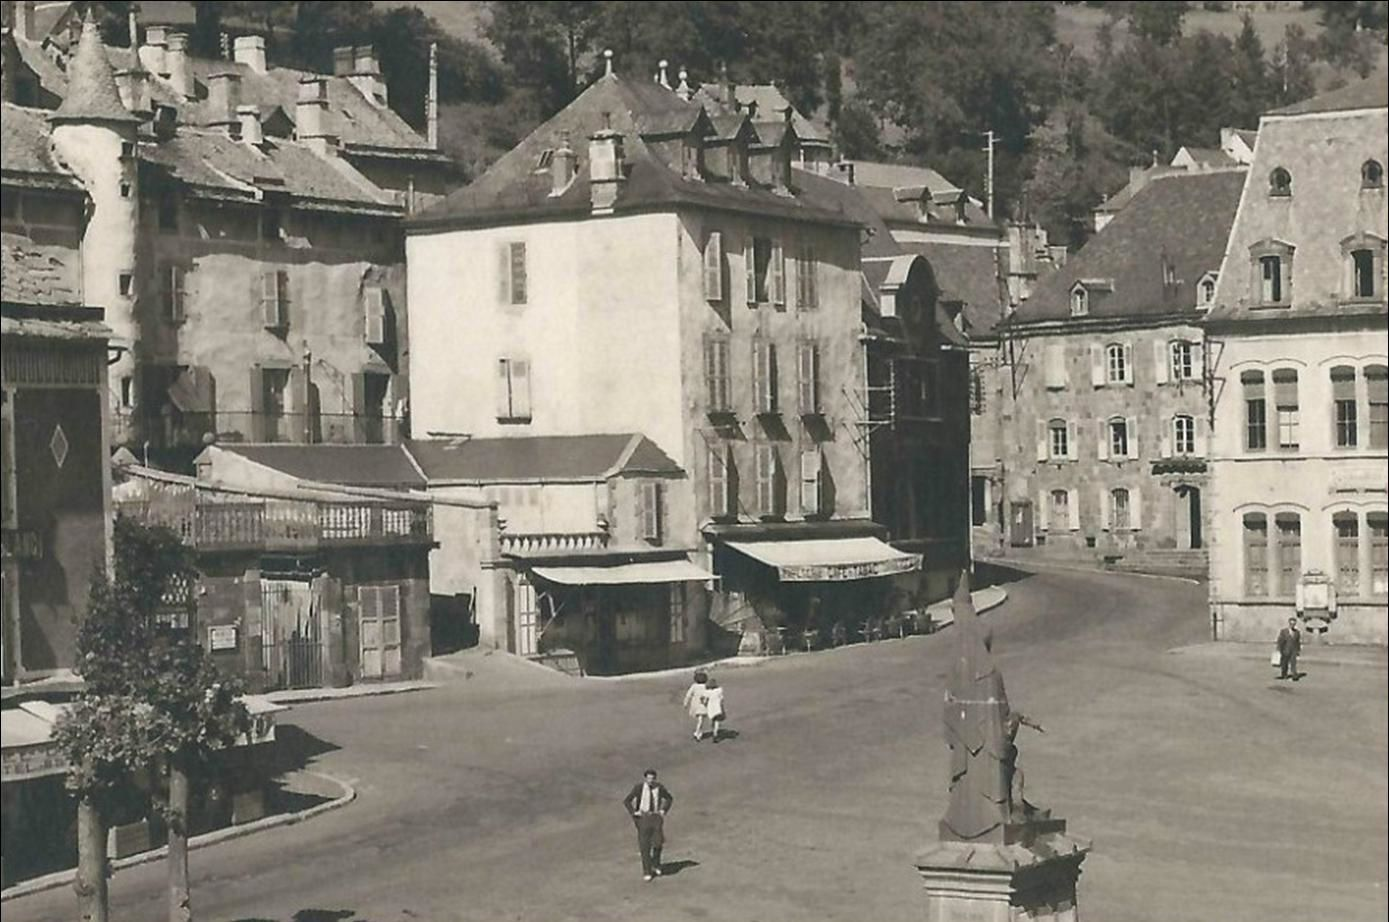 Les villages du Cantal:Murat